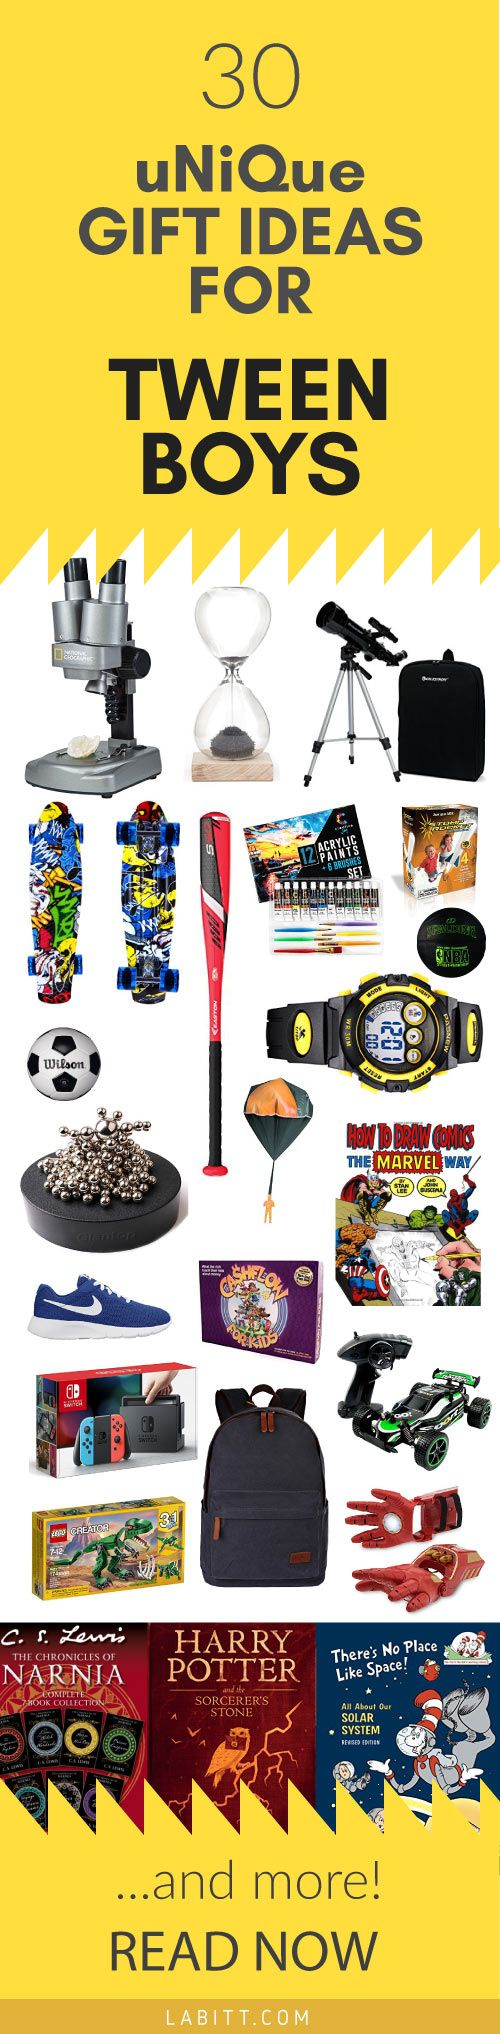 Cool sports gifts for christmas